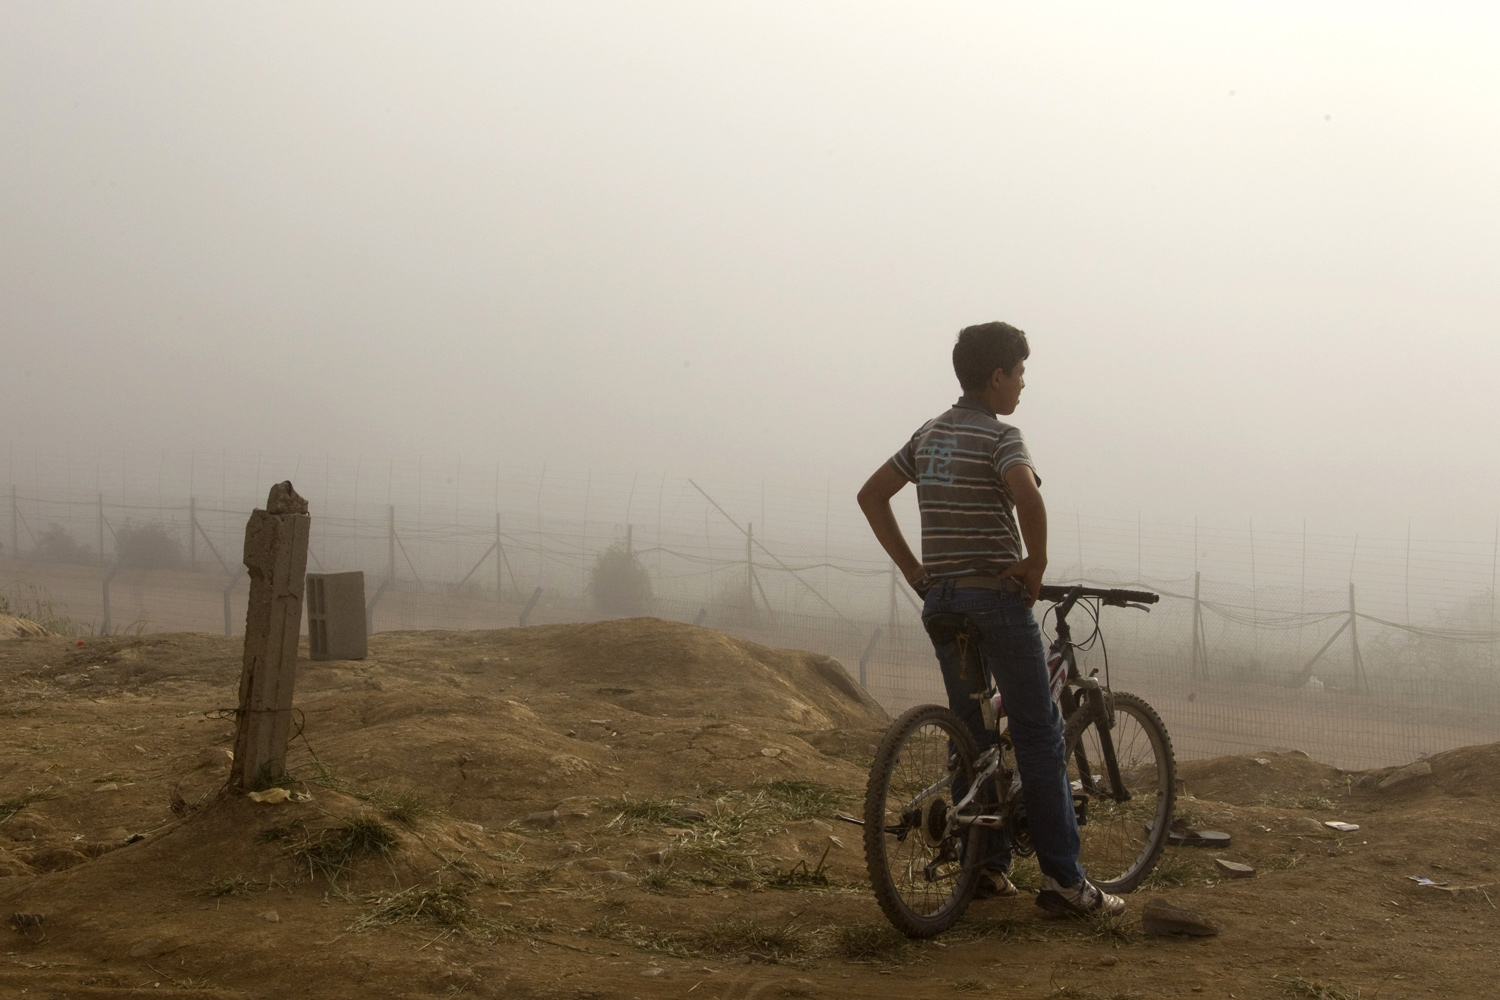 June 6, 2011. A boy sits on his bicycle in Majdal Shams, Israel, near Israel's border with Syria.